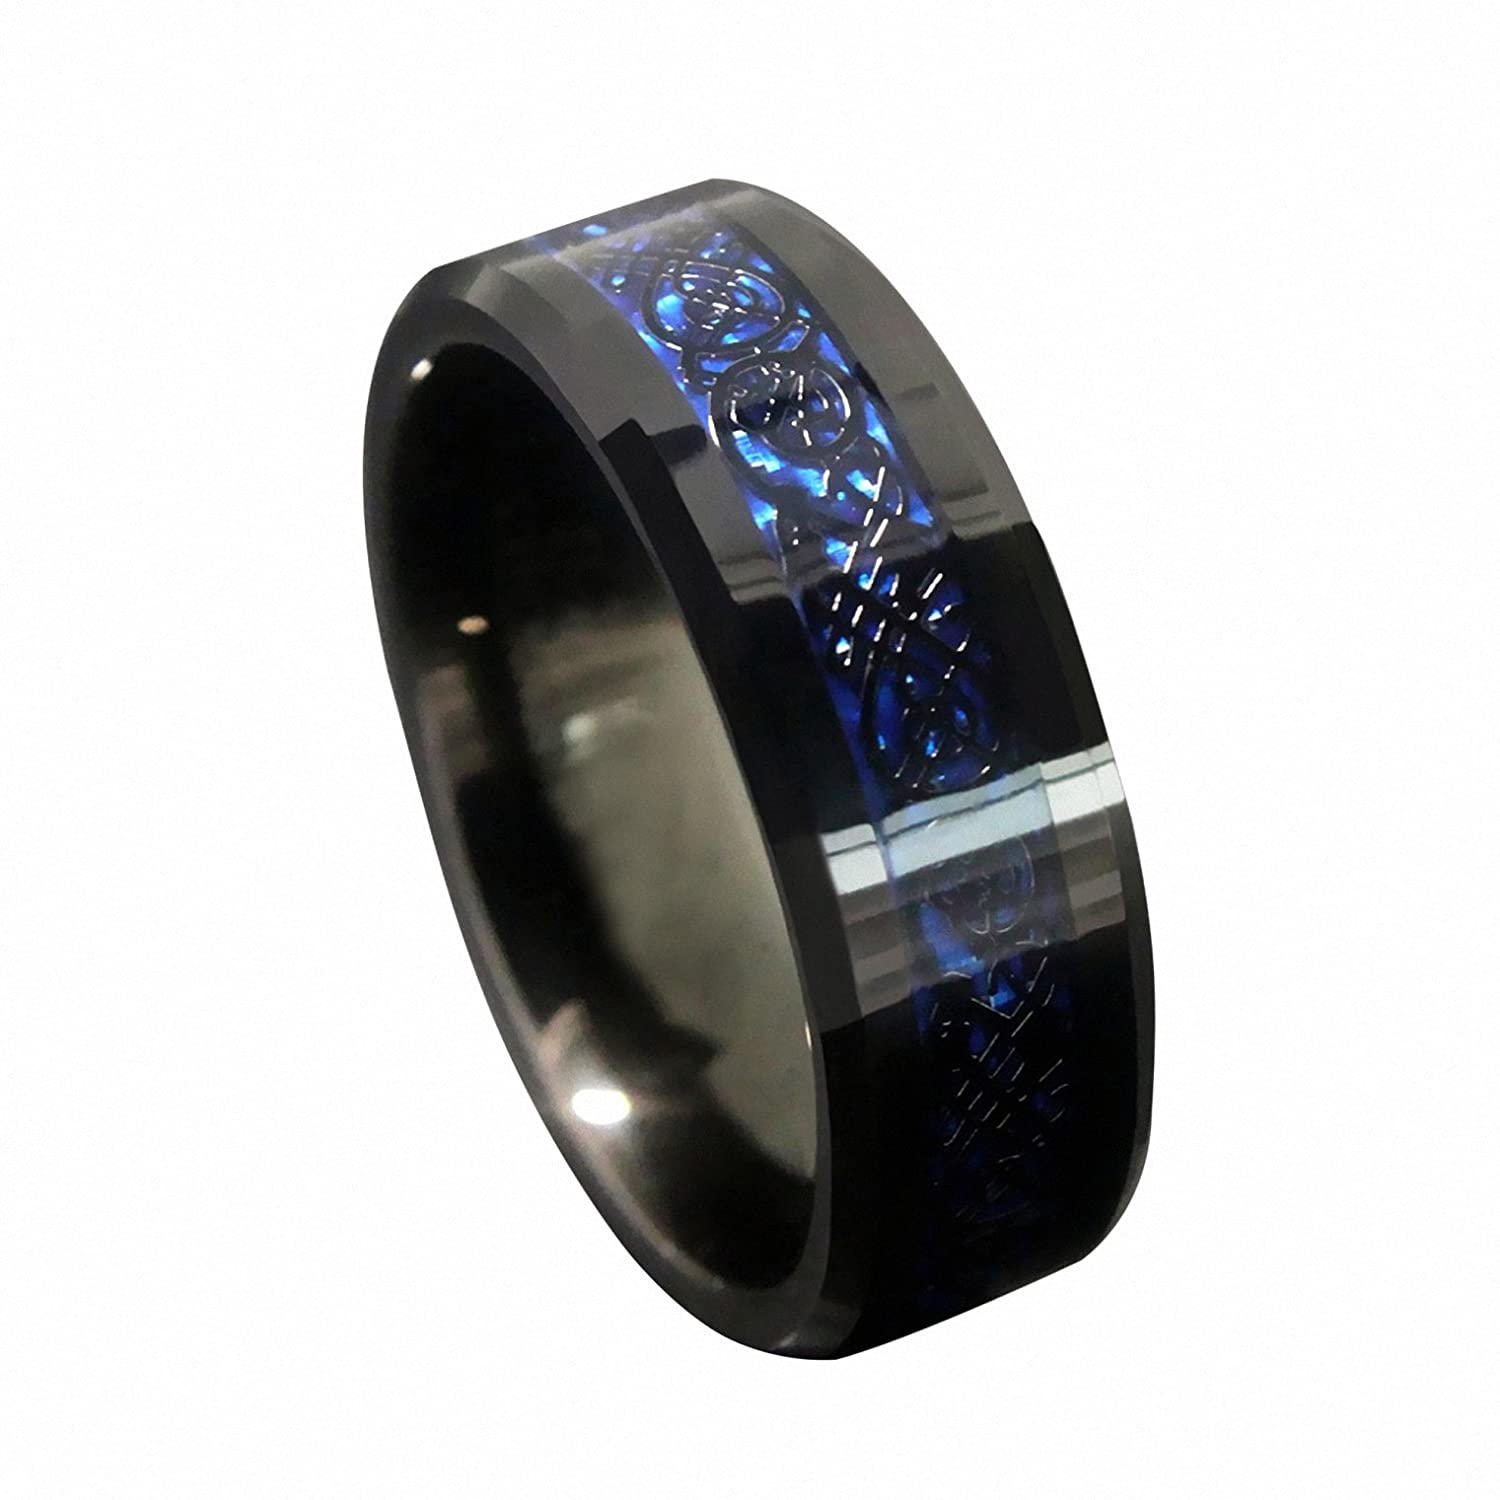 bands tungsten brushed gold size white men blue black cubic for inlay mens sapphire her rose hers yellow rings and titanium diamonds ring designs zirconia custom antler steel of band with jewelry silver ironwood engraved zirconium matte his wedding full available design staghead best